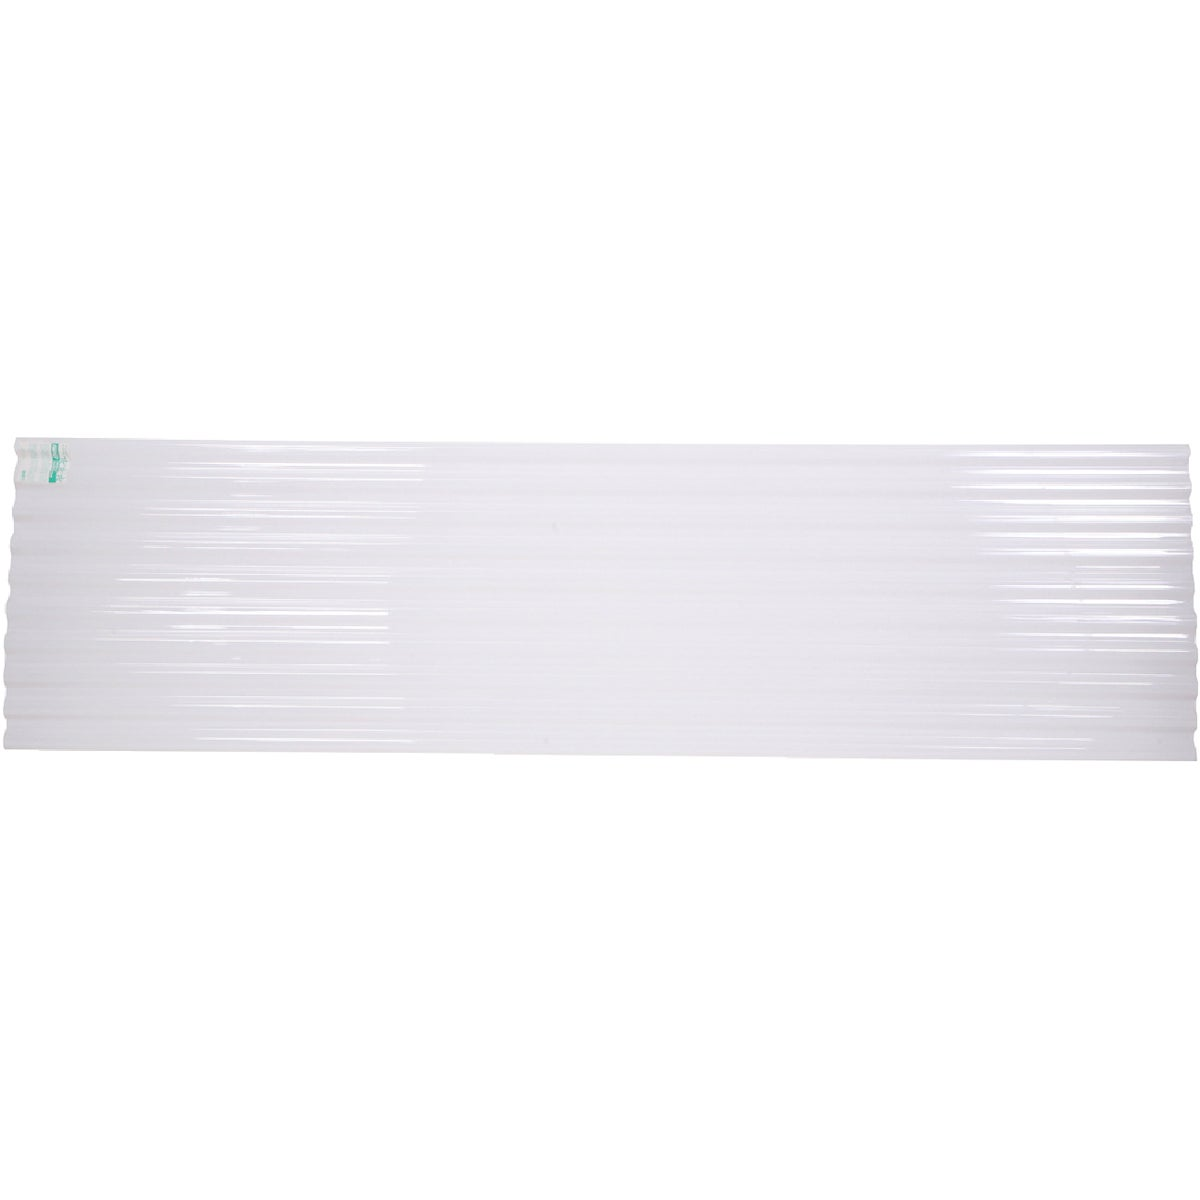 12' WHT CORRUGATED PANEL - 141332 by Ofic North America